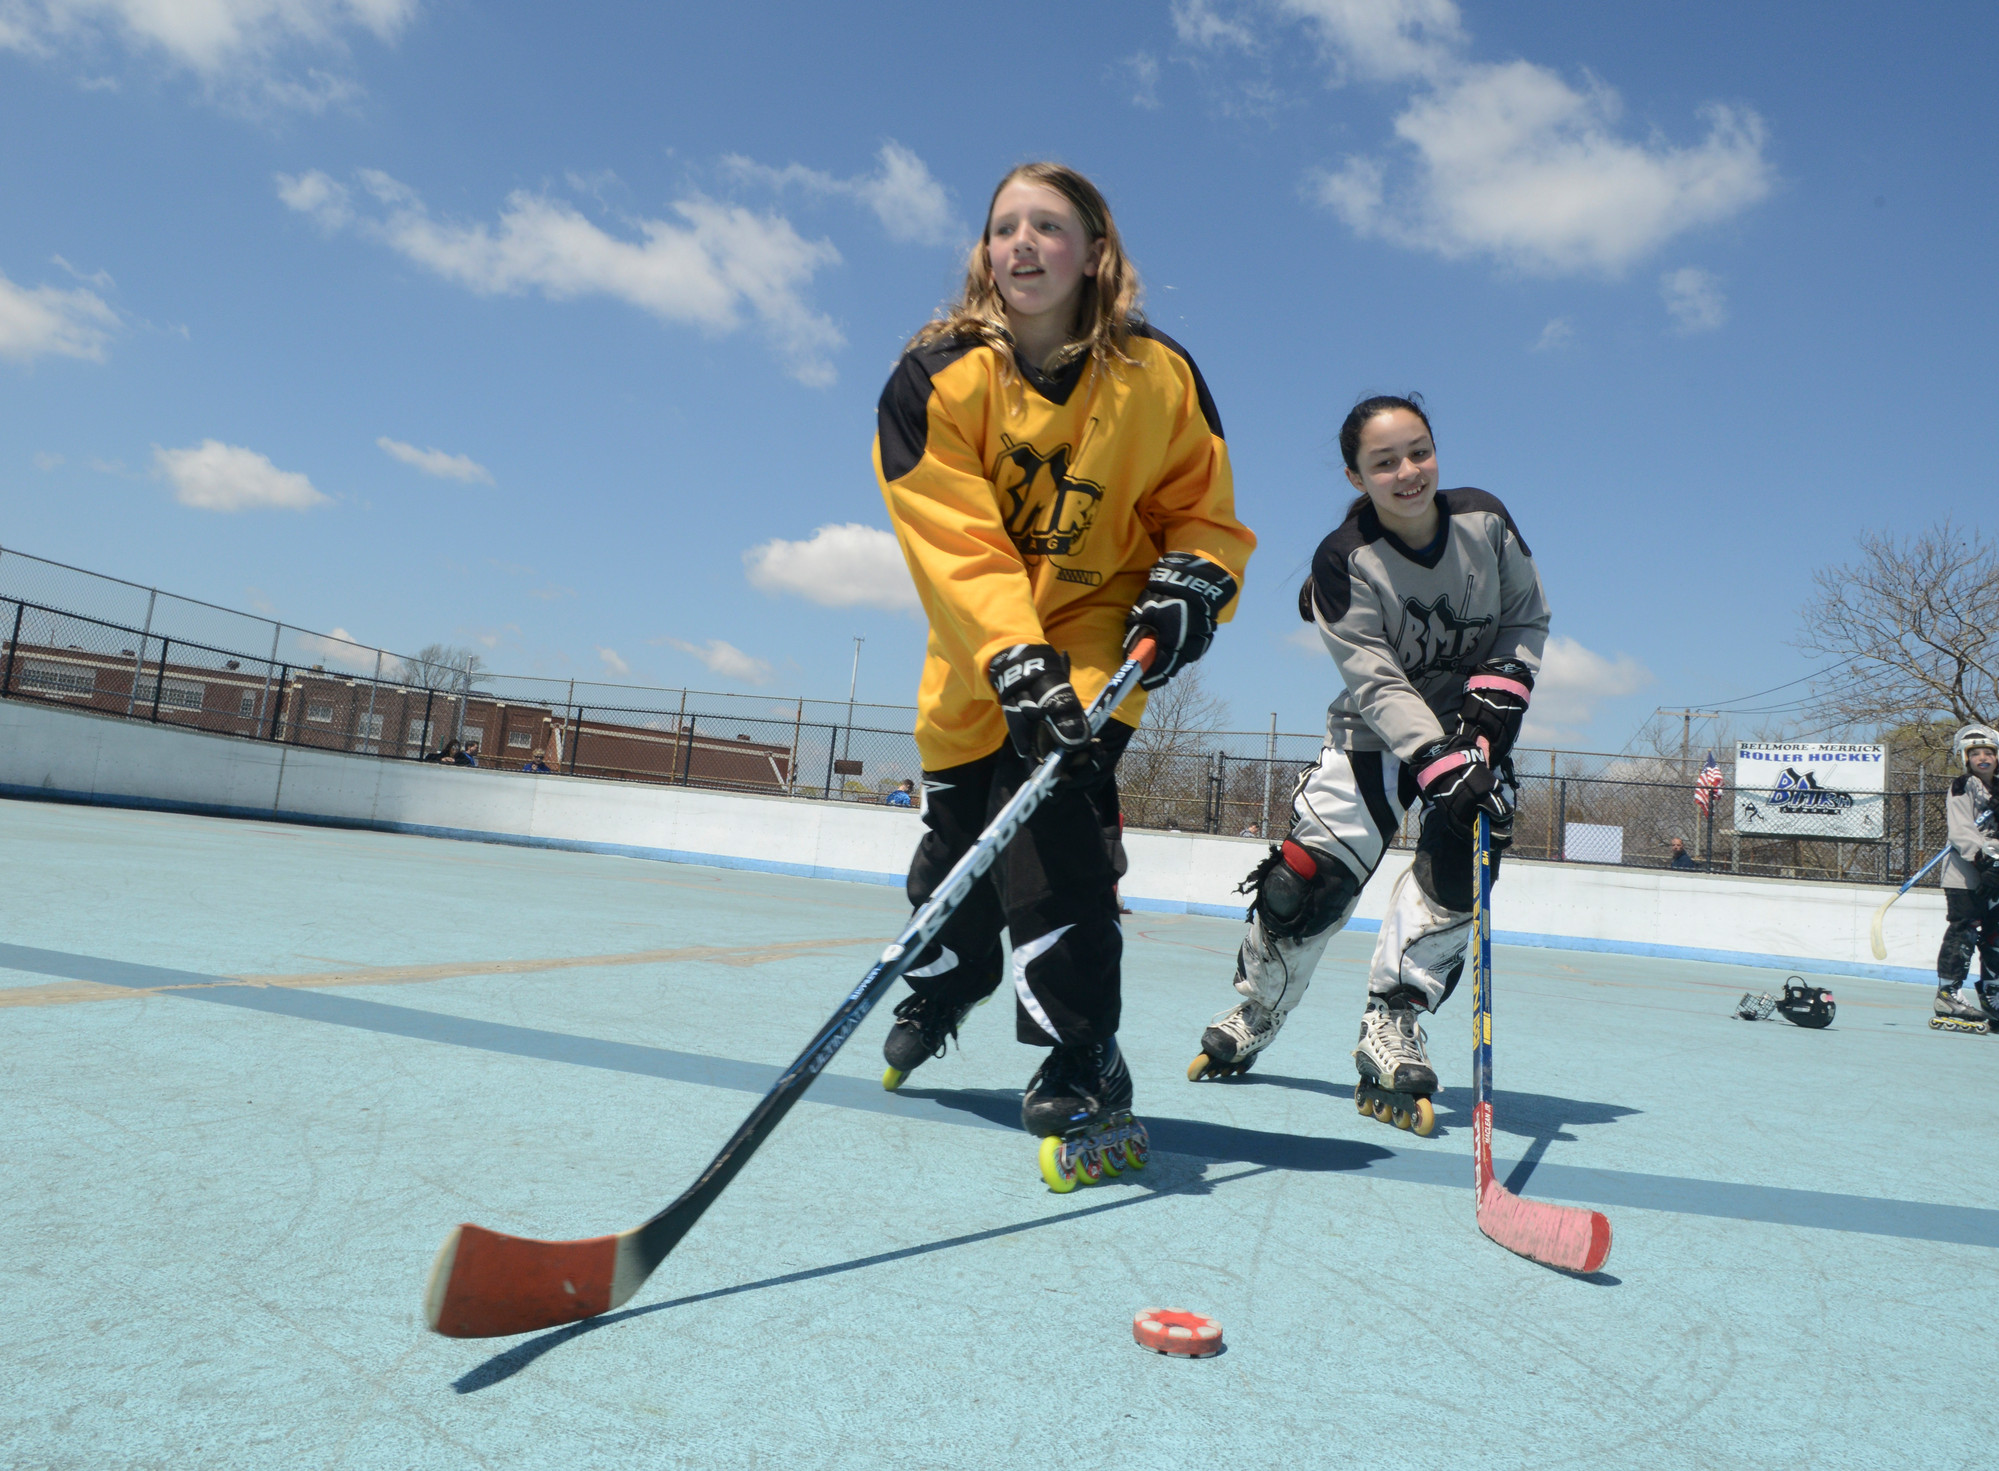 Julia Cole, 11, and Molly Quan, 10, laced up their inline skates on Saturday during the Bellmore-Merrick Roller Hockey League�s Player Appreciation Day.